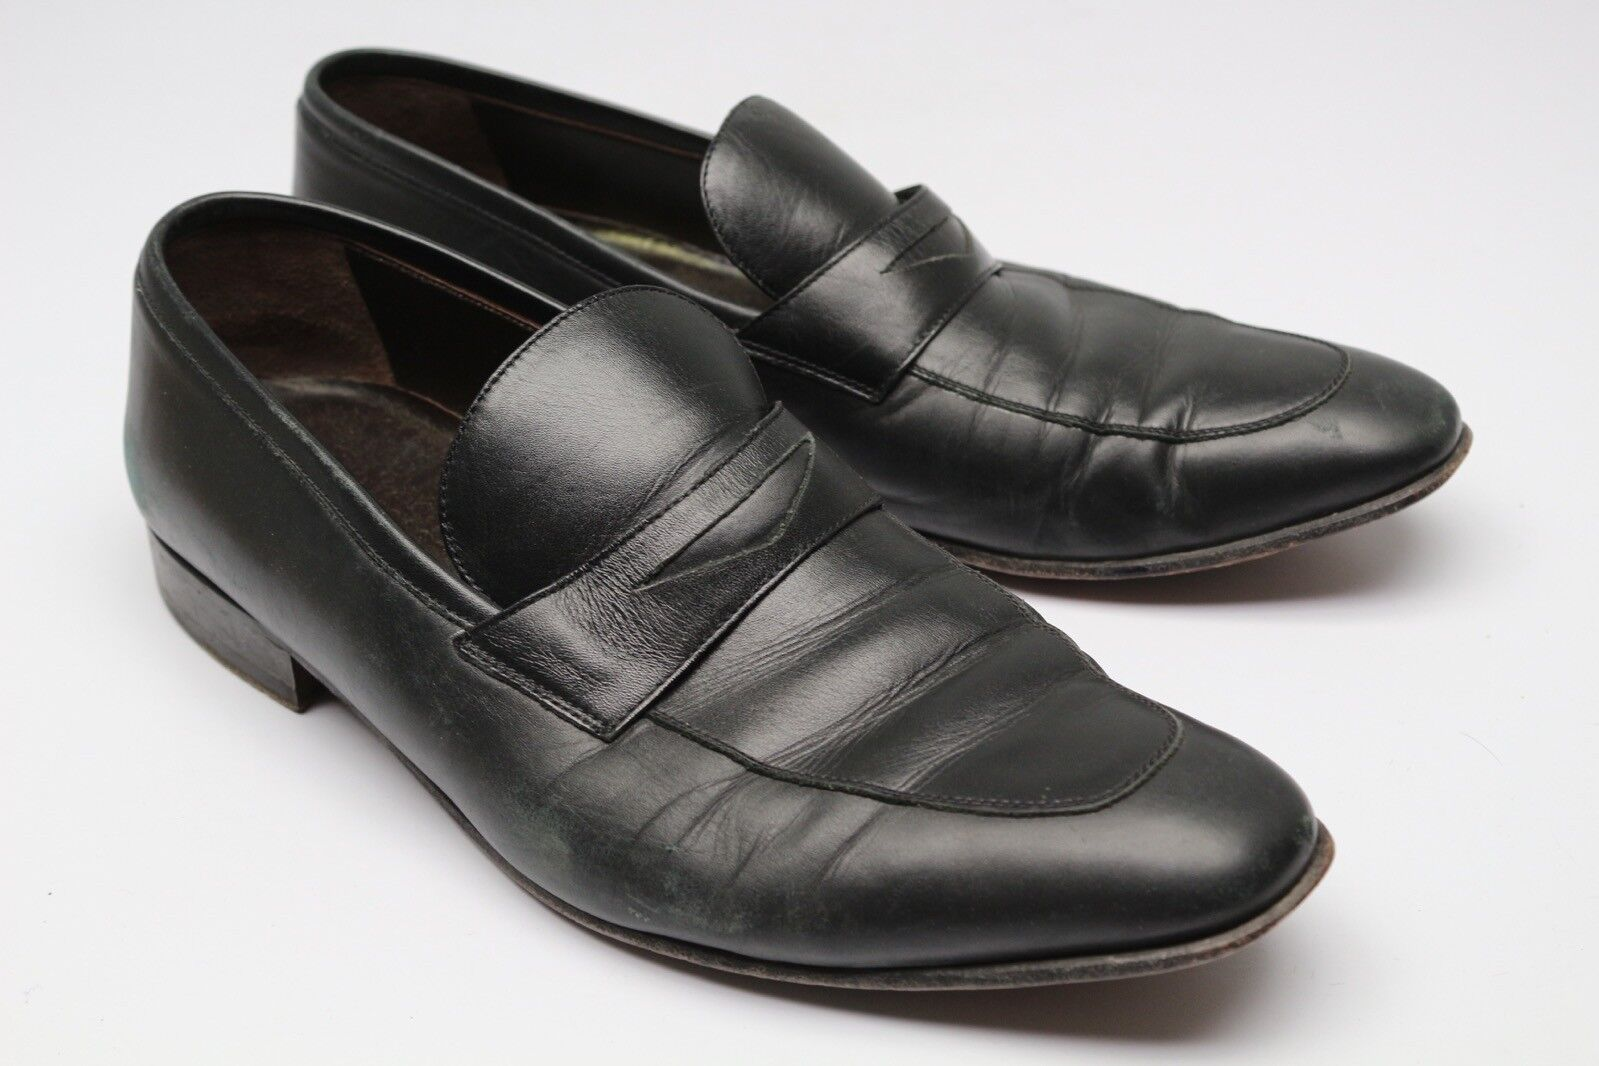 A Testoni Basic Penny Loafers 9.5 Black Leather Apron Toe Slim On shoes Used